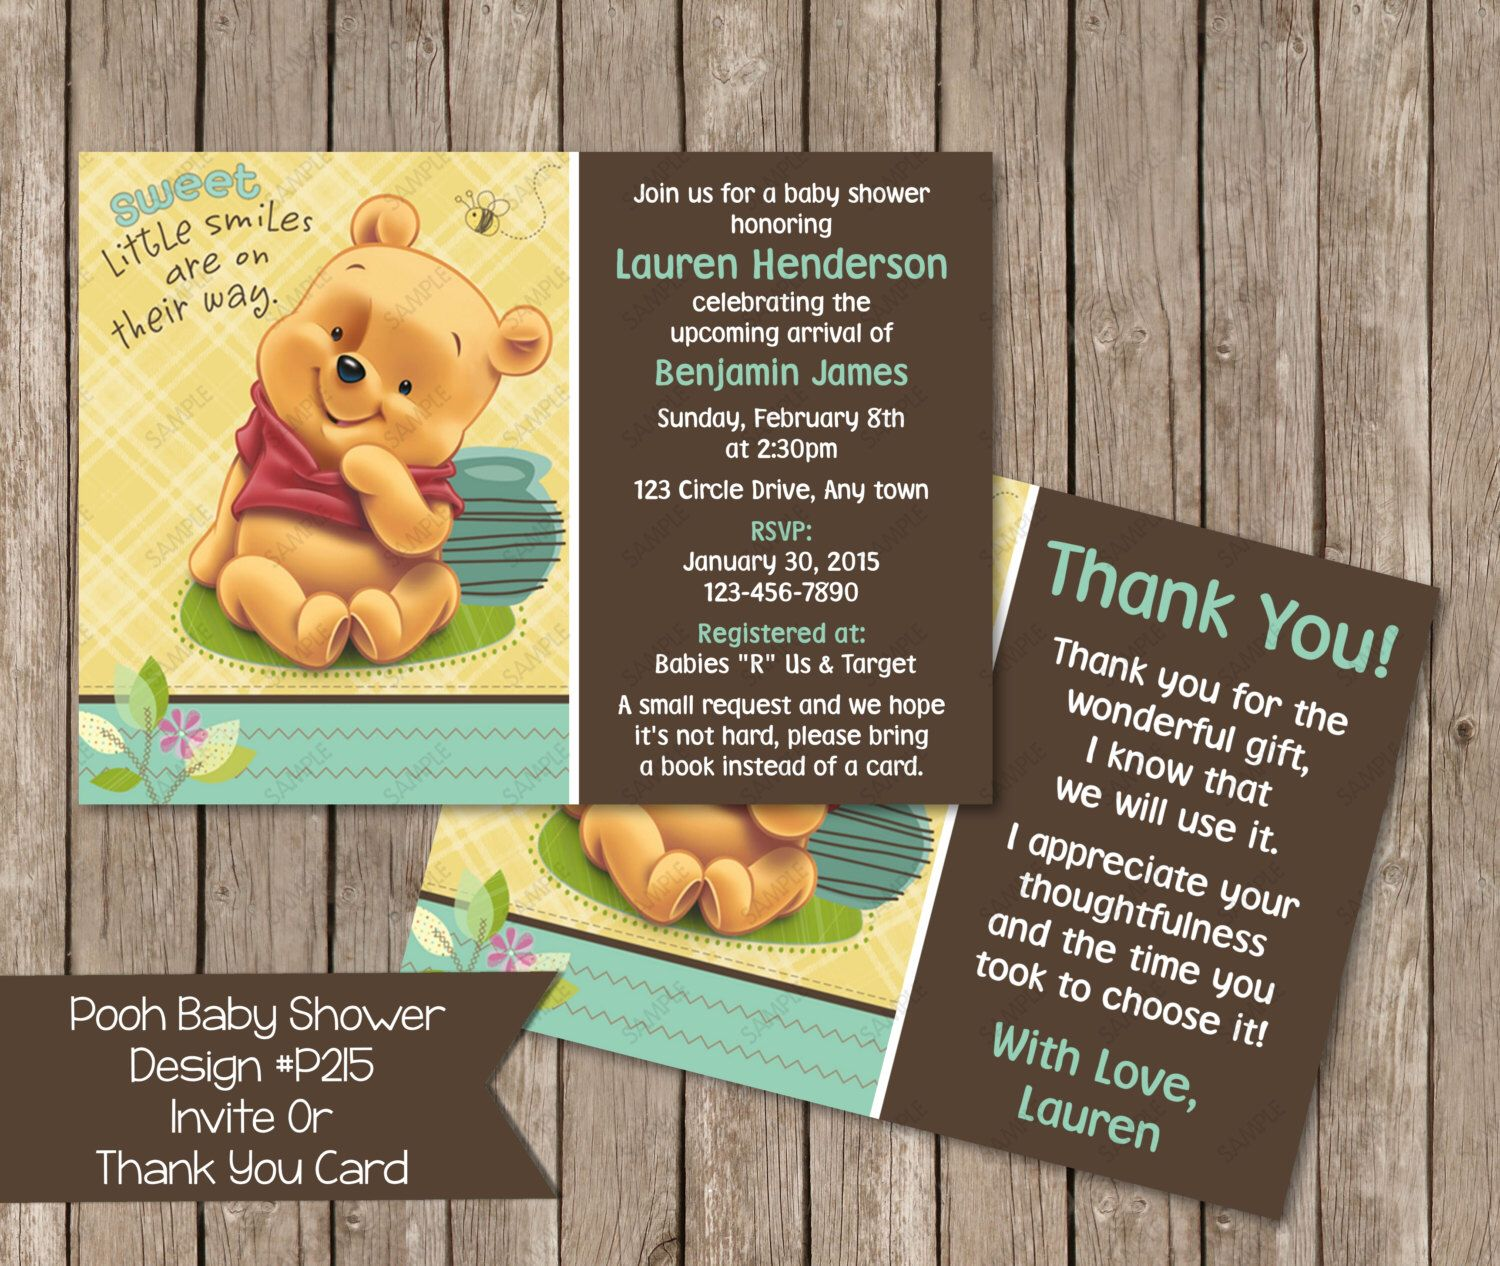 Baby Winnie the Pooh Baby Shower Invitaiton OR Thank you card -  Digital File by PeriwinklePapery on Etsy https://www.etsy.com/listing/228506966/baby-winnie-the-pooh-baby-shower